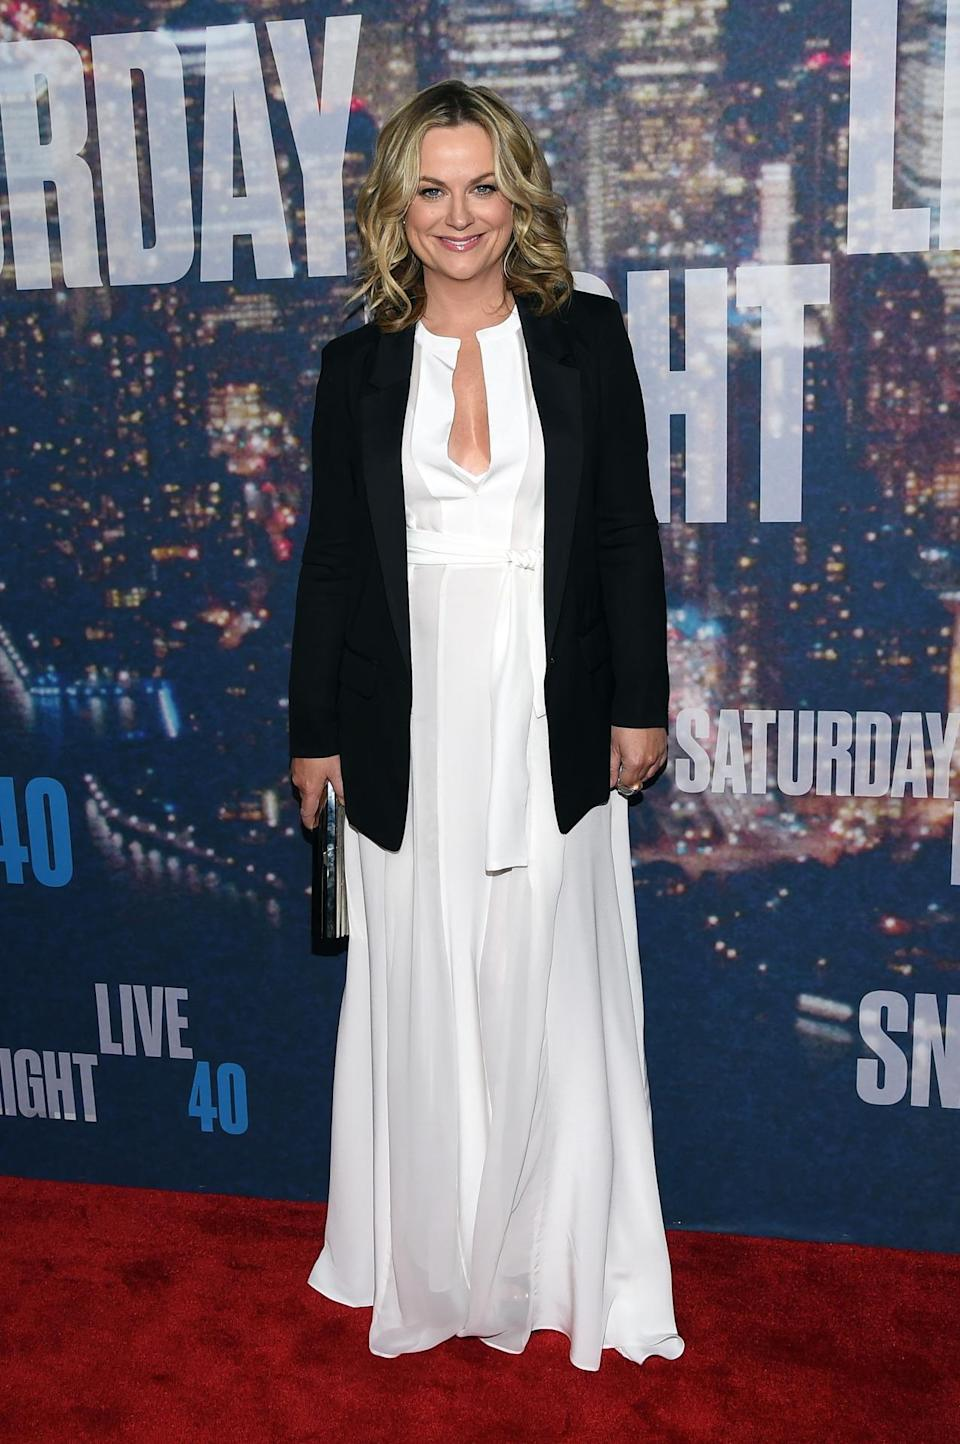 Wearing winter white and covering up with a black blazer, Amy Poehler pulls off the classic color combination.